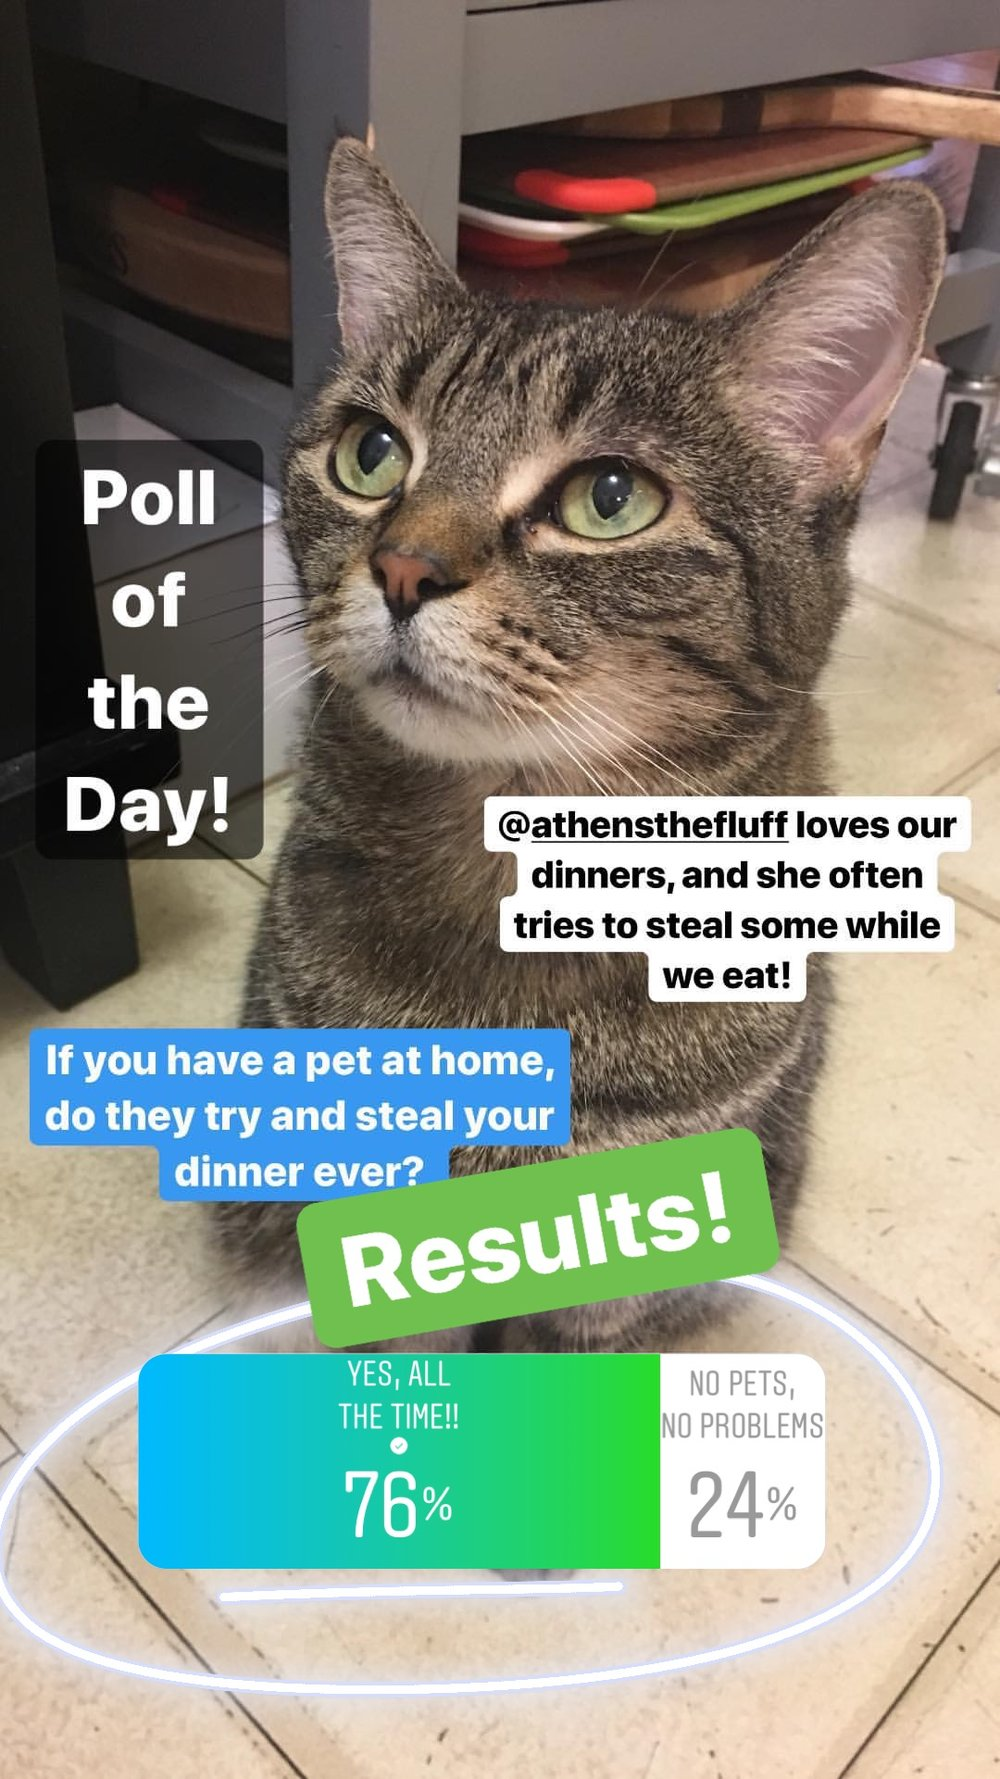 The results of this poll made me very happy! Glad to know that other homes with pets have this exact same problem as our cat always tries to steal some of our dinner! While she's extremely partial to tomato sauce, she undeniably tries to taste every dinner, making sure to leave it alone if she has no interest (which is rare). So, fellow pet owners, rejoice! Maybe we should have one big dinner party for the pets, with people food? It would be quite the sight! :)